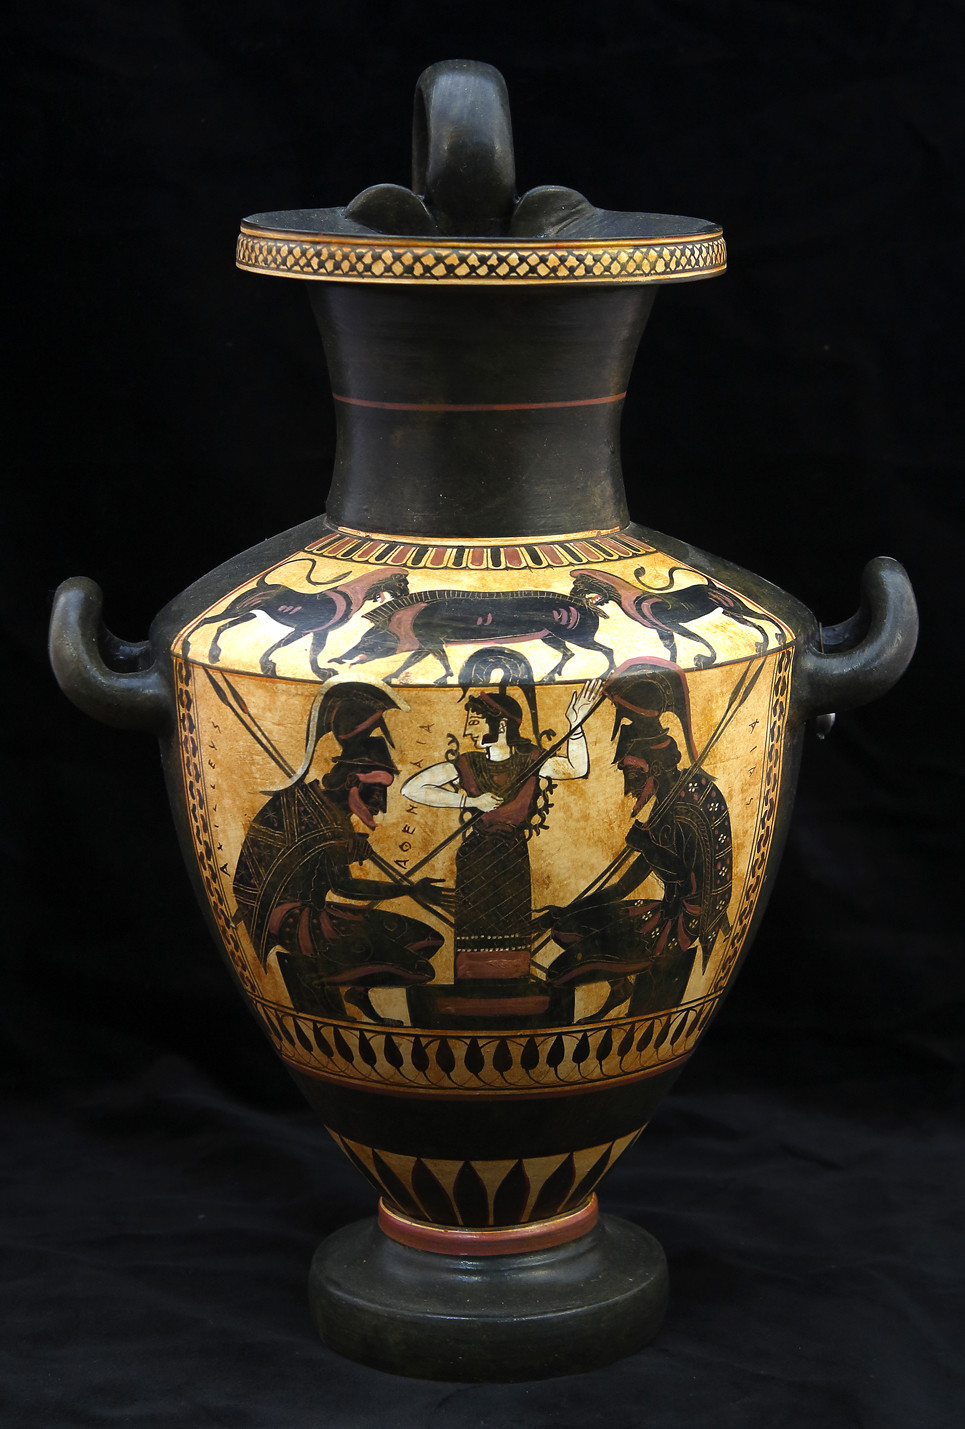 large black vases for sale of greek pottery shop buy ancient greek vessels replicas ceramic vases throughout greek pottery shop black figured hydria with achilleas and ajax playing zatrikion and the godess athena